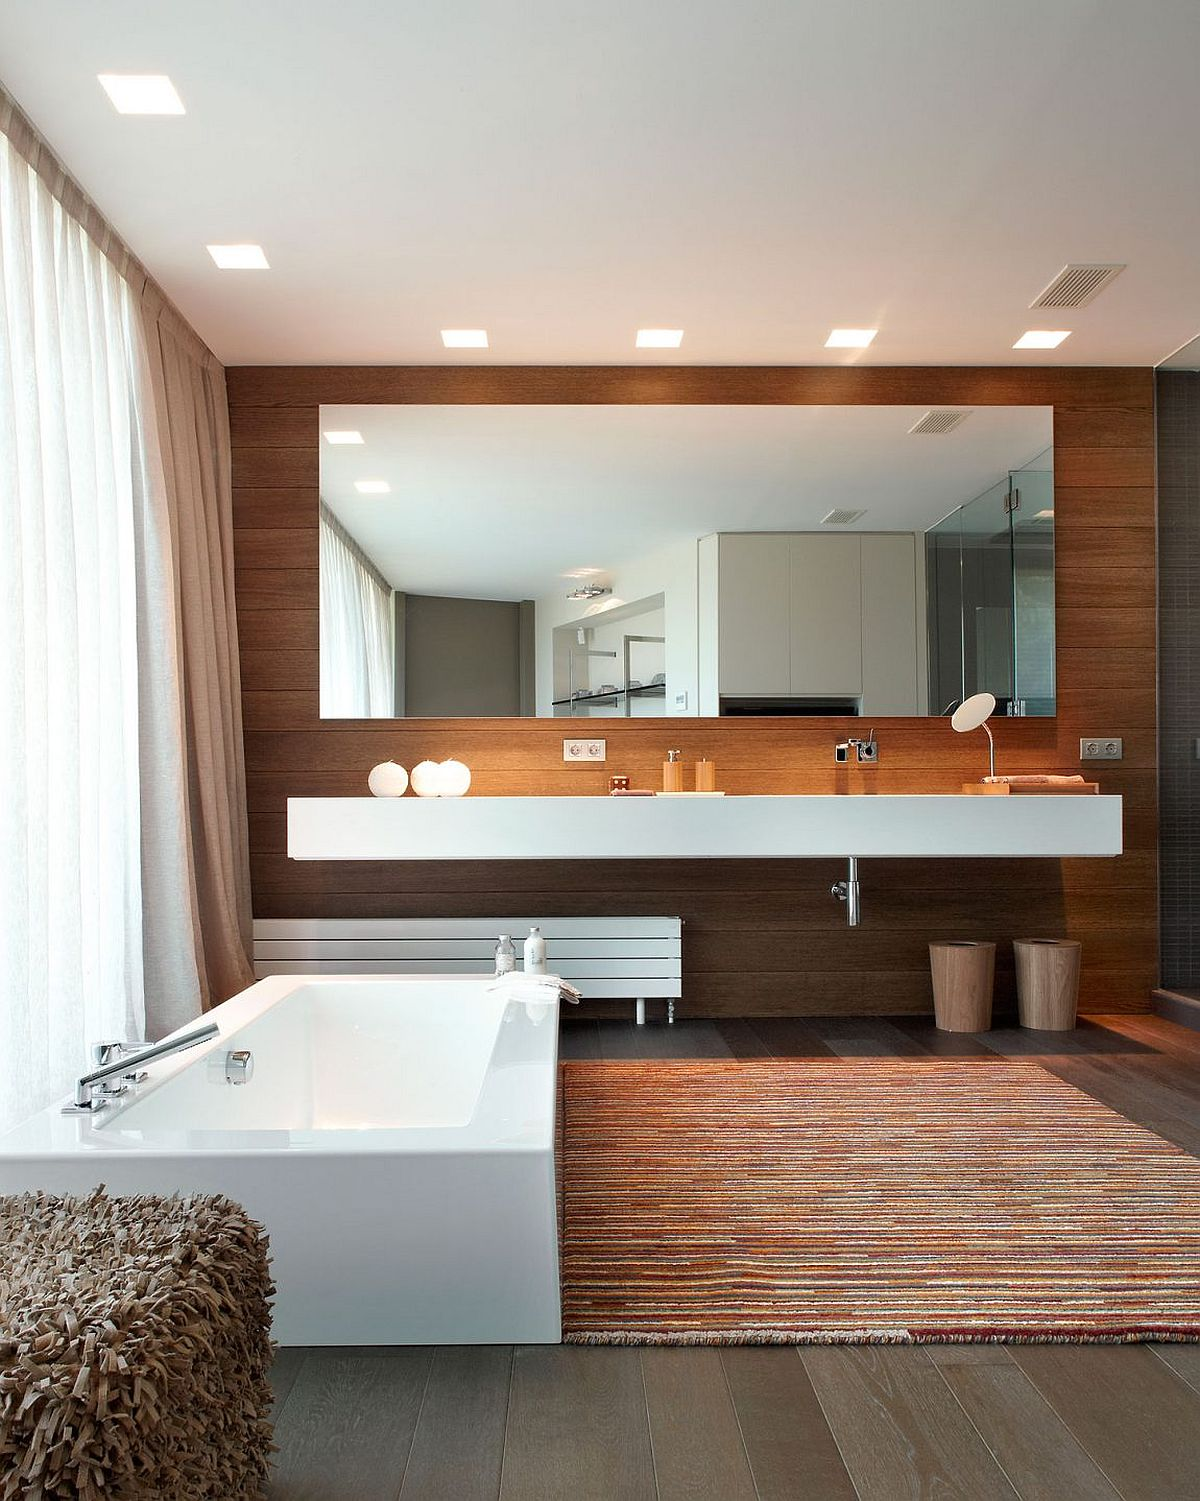 Luxurious modren bathroom with a wooden vanity wall